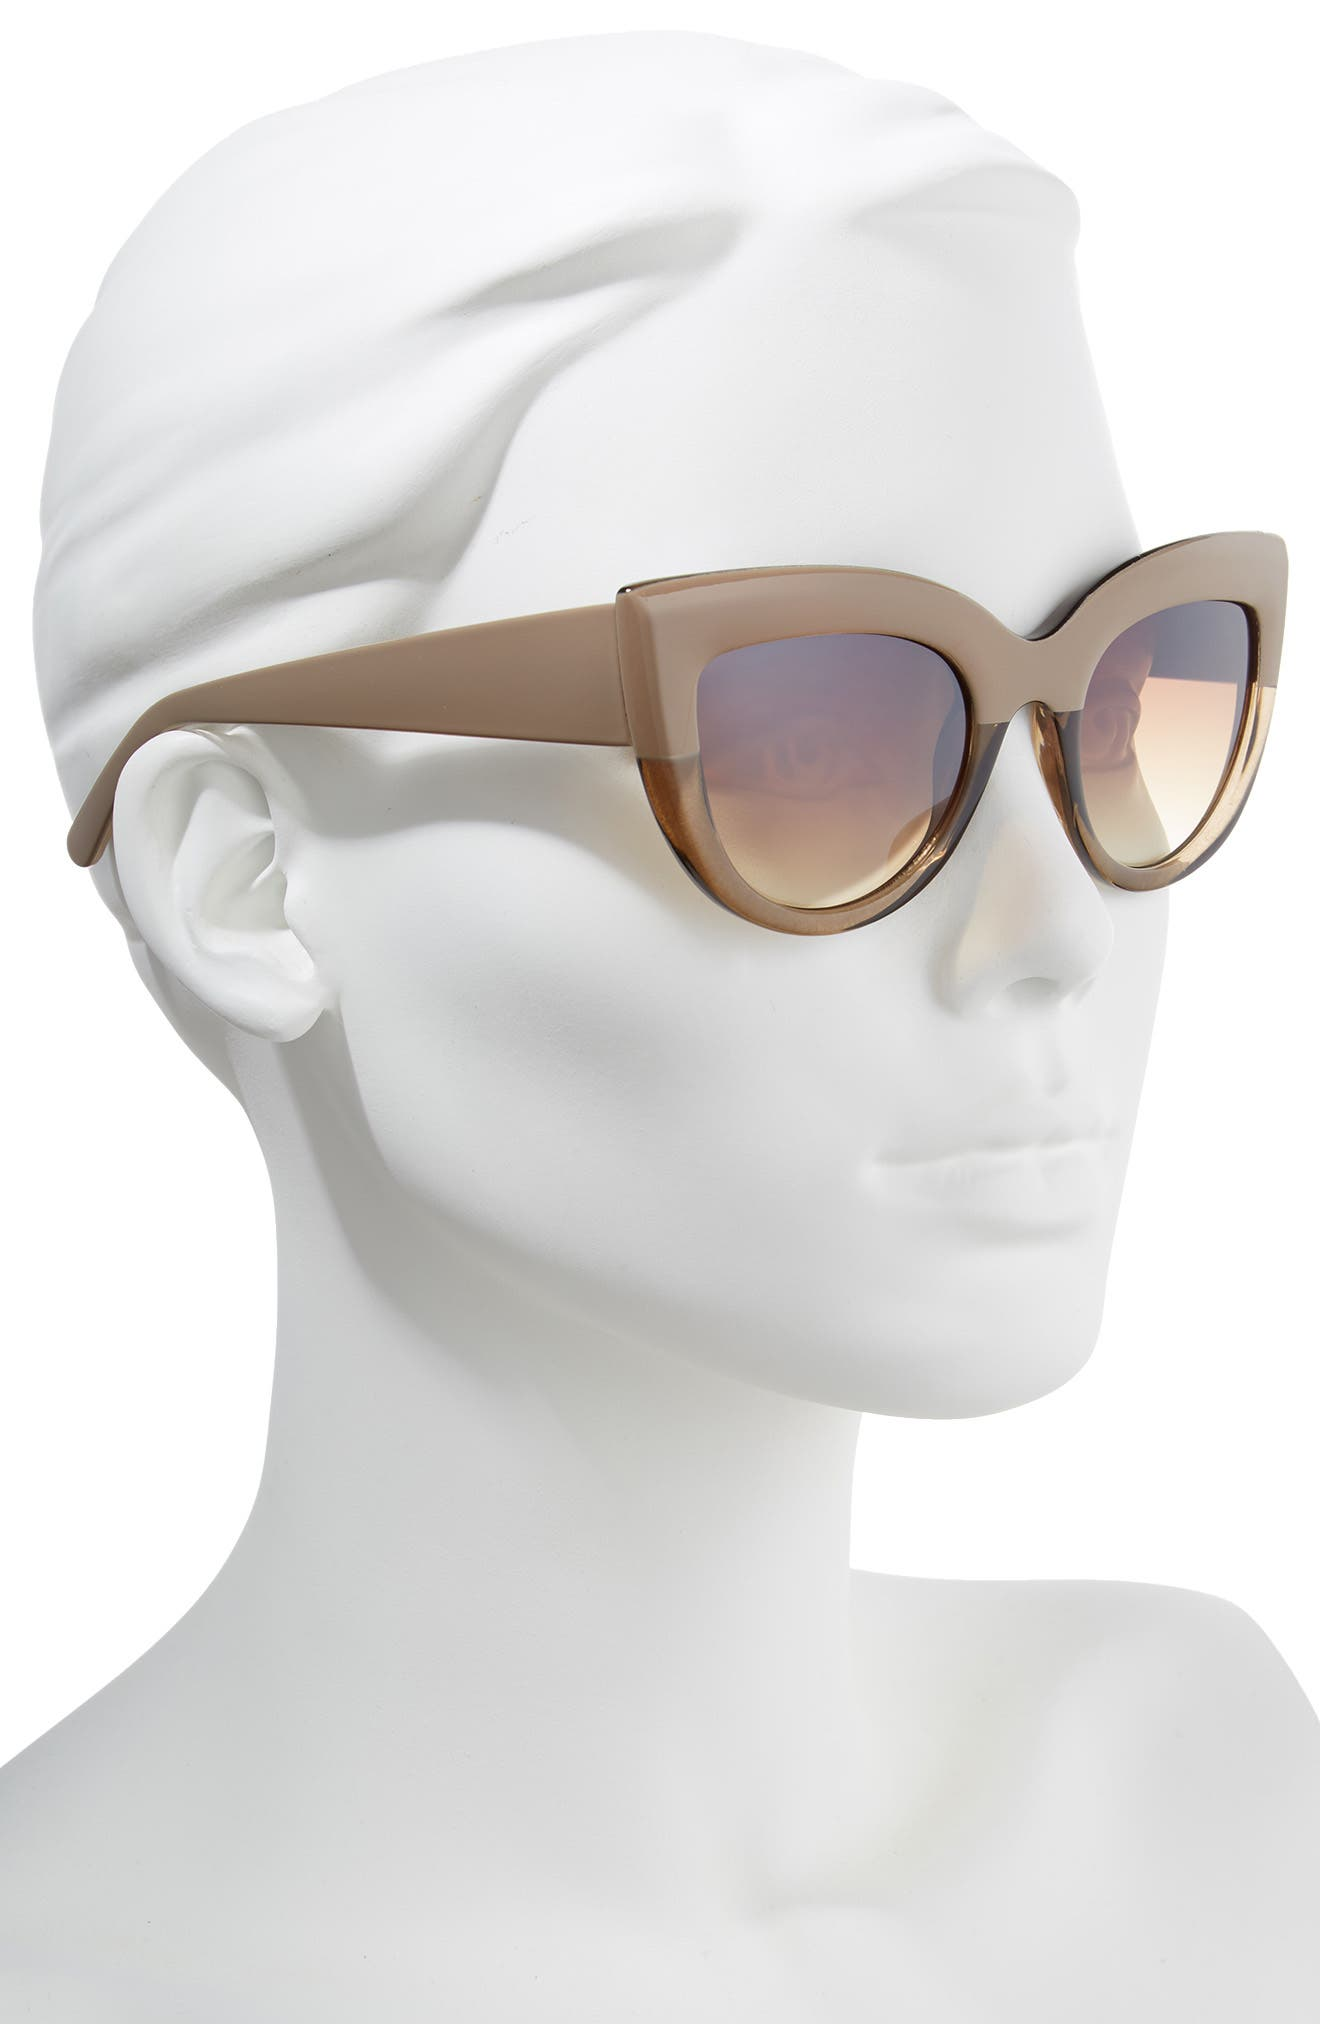 60mm Two-Tone Cat Eye Sunglasses,                             Alternate thumbnail 2, color,                             Taupe/ Brown